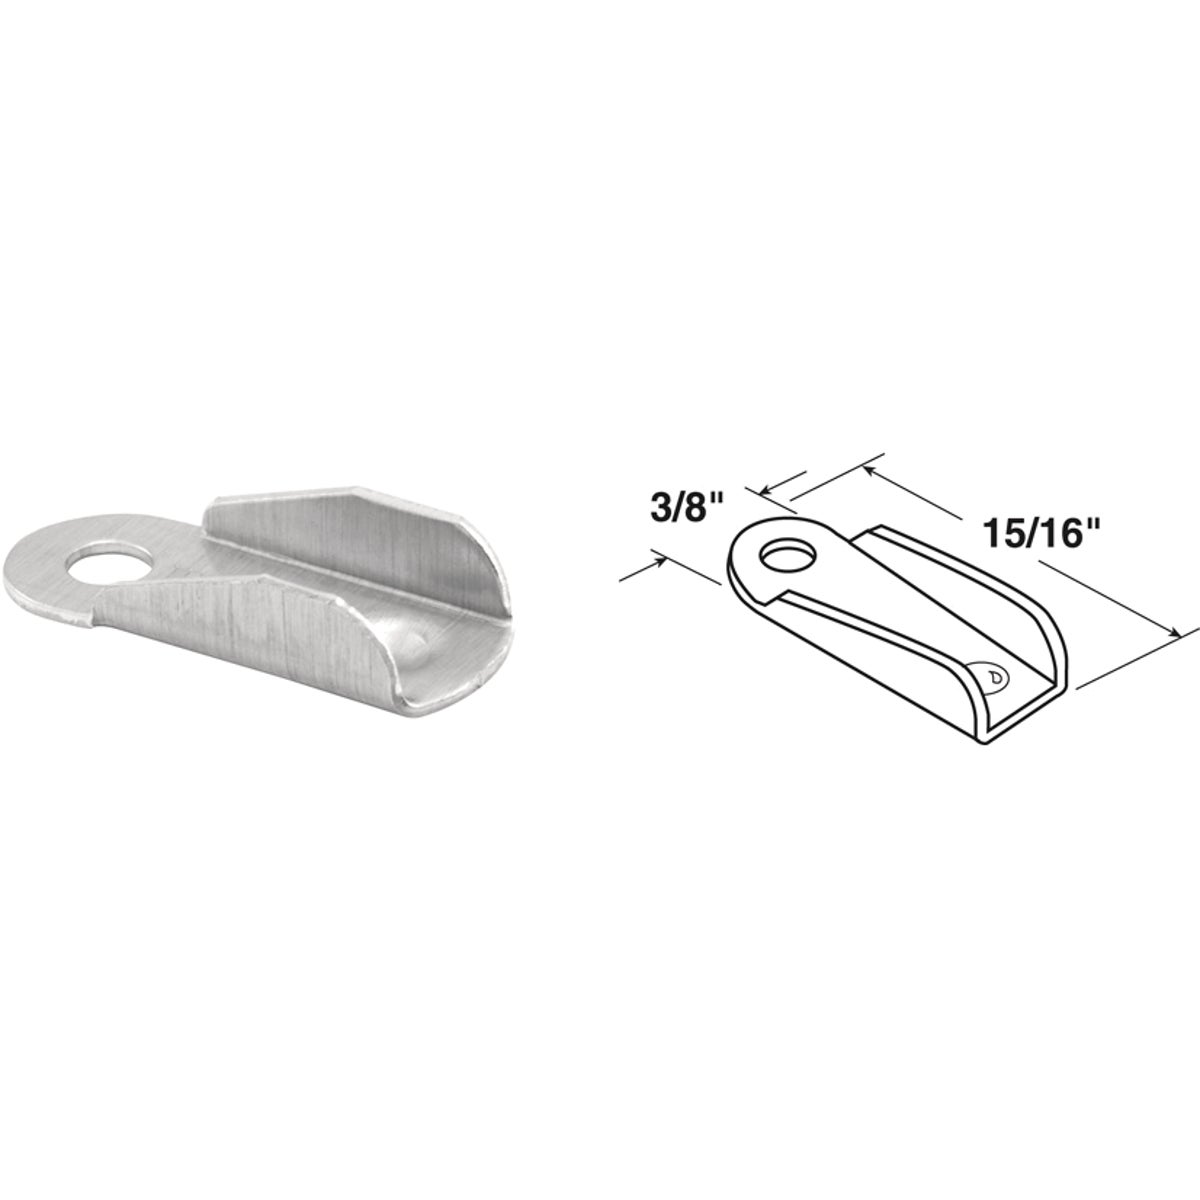 WIND SCREEN WING CLIPS - 181785 by Prime Line Products